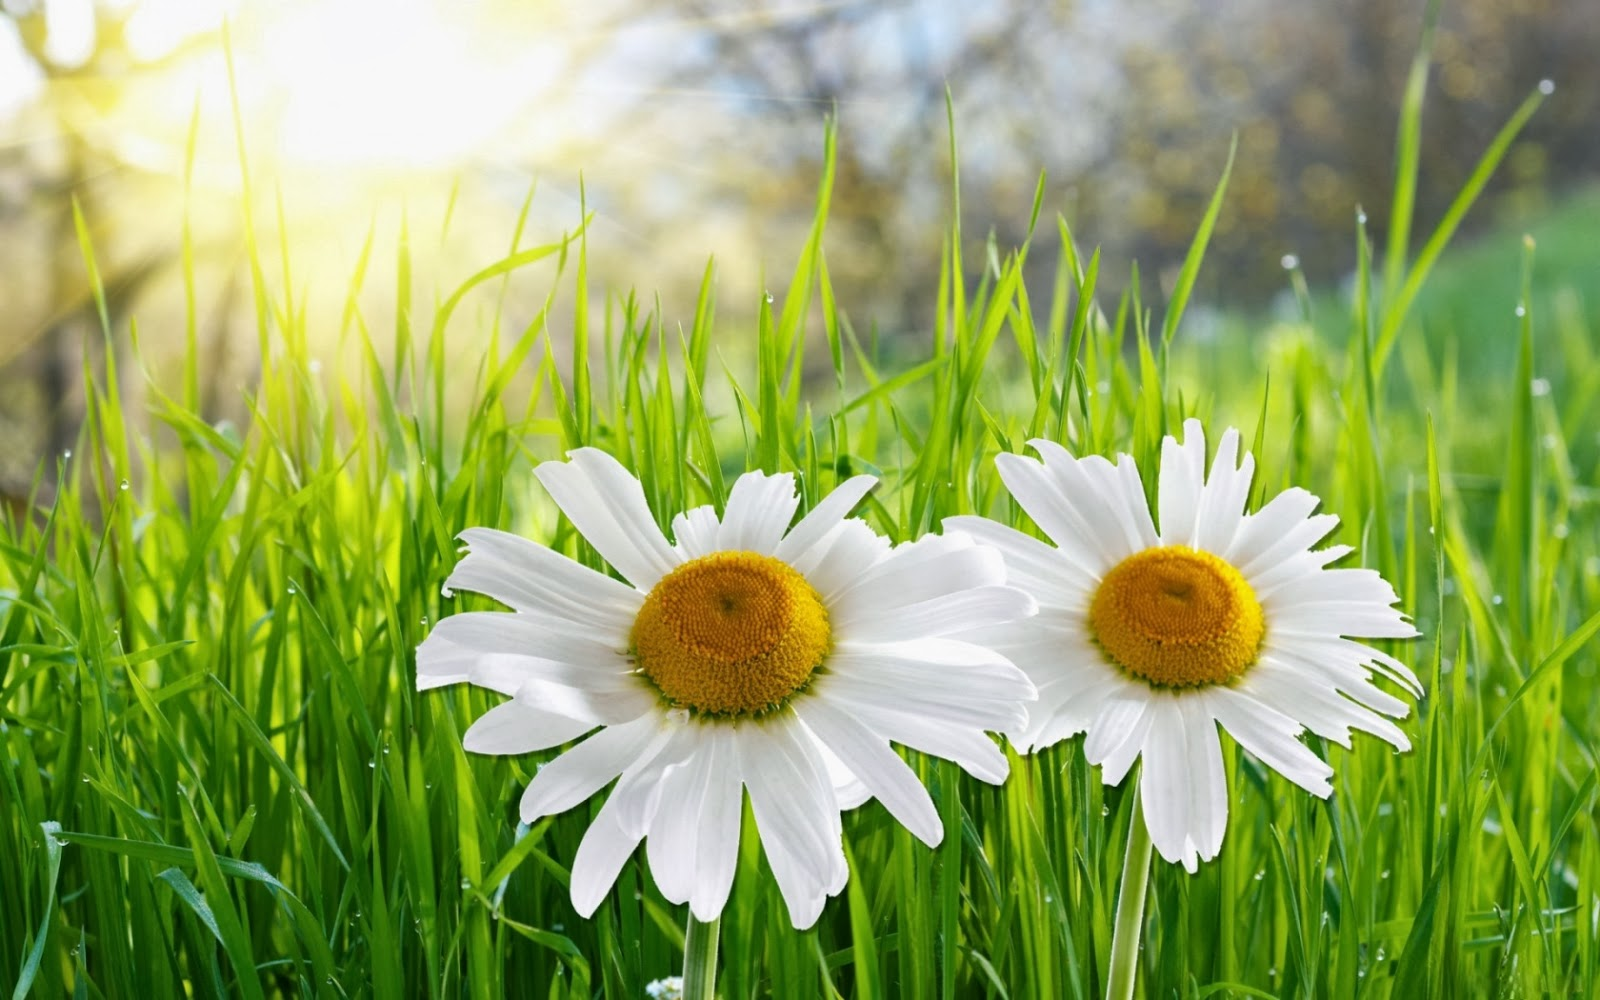 wallpaper and make this Daisy flower wallpaper for your desktop 1600x1000